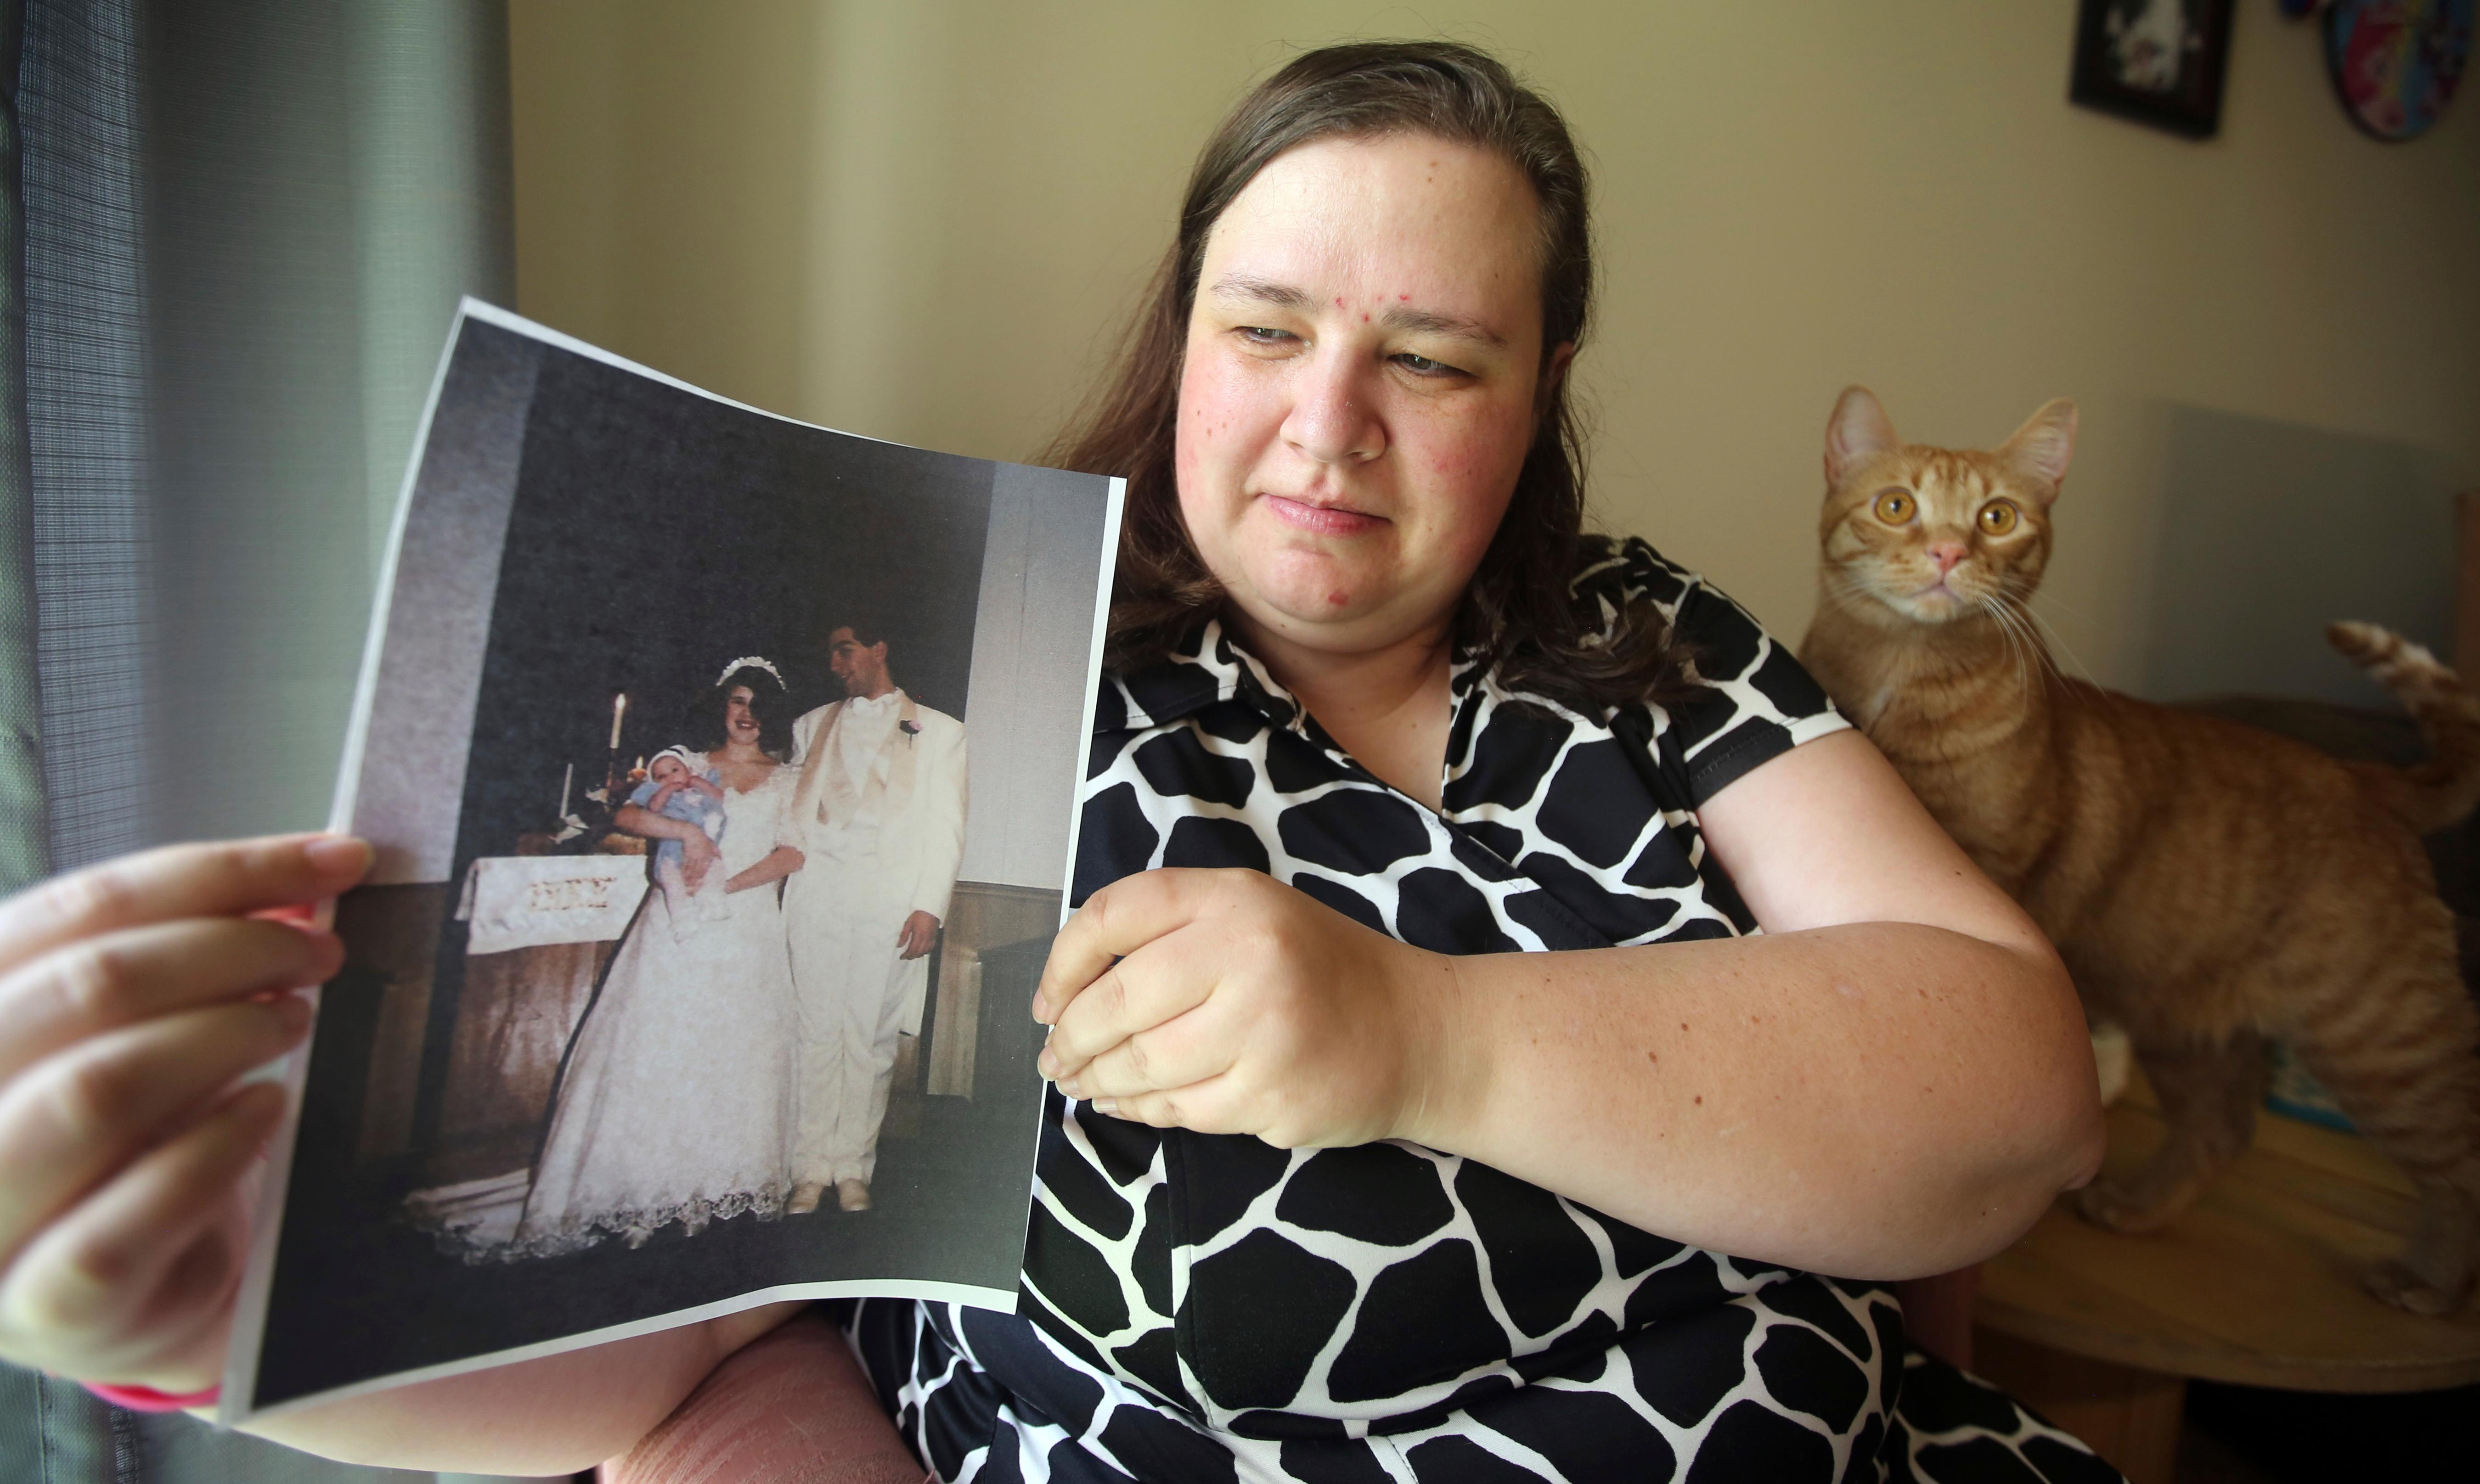 "Heidi Clark holds a photograph from her 1995 wedding at her home in Orem, Utah, on Friday, May 18, 2018. Clark became pregnant at 16 and married soon after, under pressure from her boyfriend's religious community of Seventh-Day Adventists in Pennsylvania, she said. ""I always felt a little bit like I was trapped,"" Clark said, now 40. ""I was 17. I was so young."" Utah state Rep. Angela Romero wants to ban marriage for anyone under 18 as part of a national push to outlaw underage marriage. (AP Photo/Rick Bowmer)"